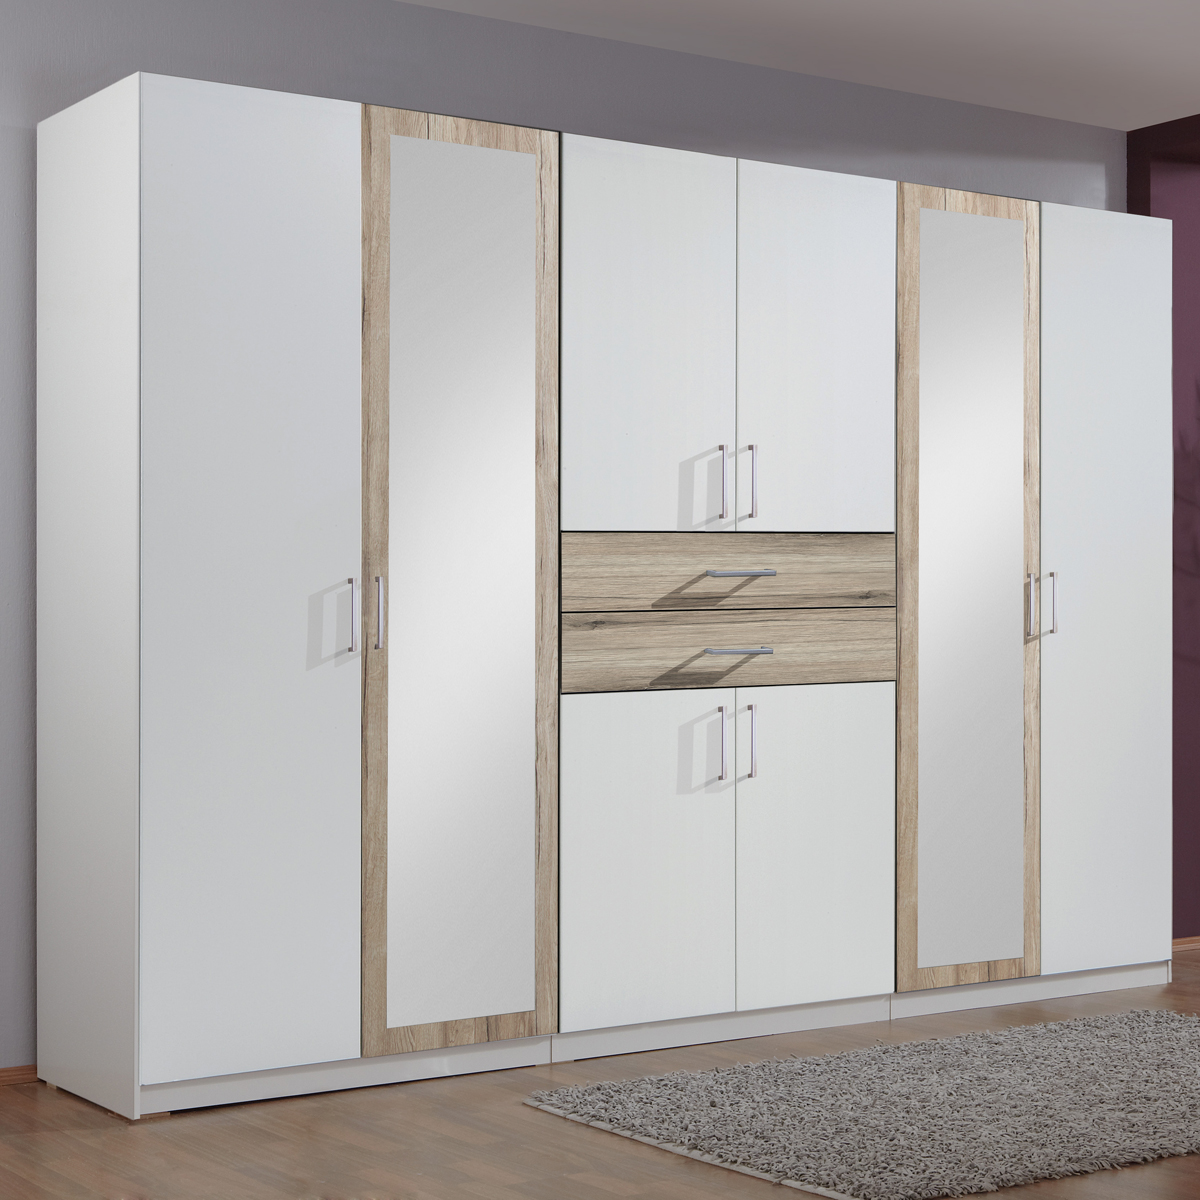 kleiderschrank diver in alpinwei eiche san remo 270 cm dreht renschrank schrank ebay. Black Bedroom Furniture Sets. Home Design Ideas